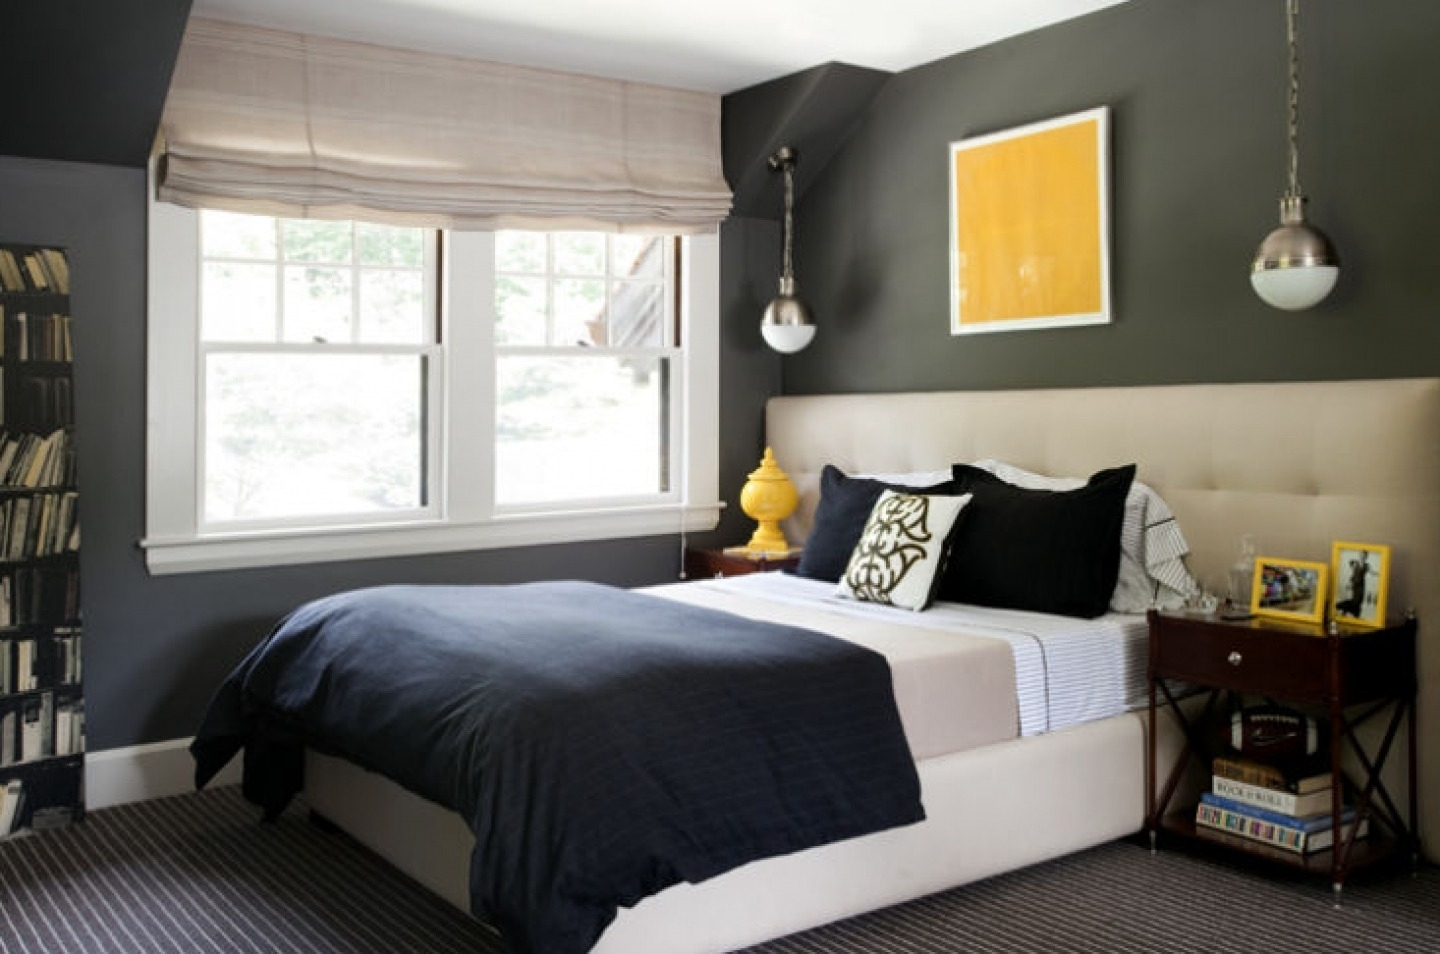 Mens bedroom ideas on a budget   robertsonthomas.com home is basically a reflection of somebody's aesthetic sense no matter how much budget. Best Mens Bedroom Ideas Cool And Masculine Simplyhome